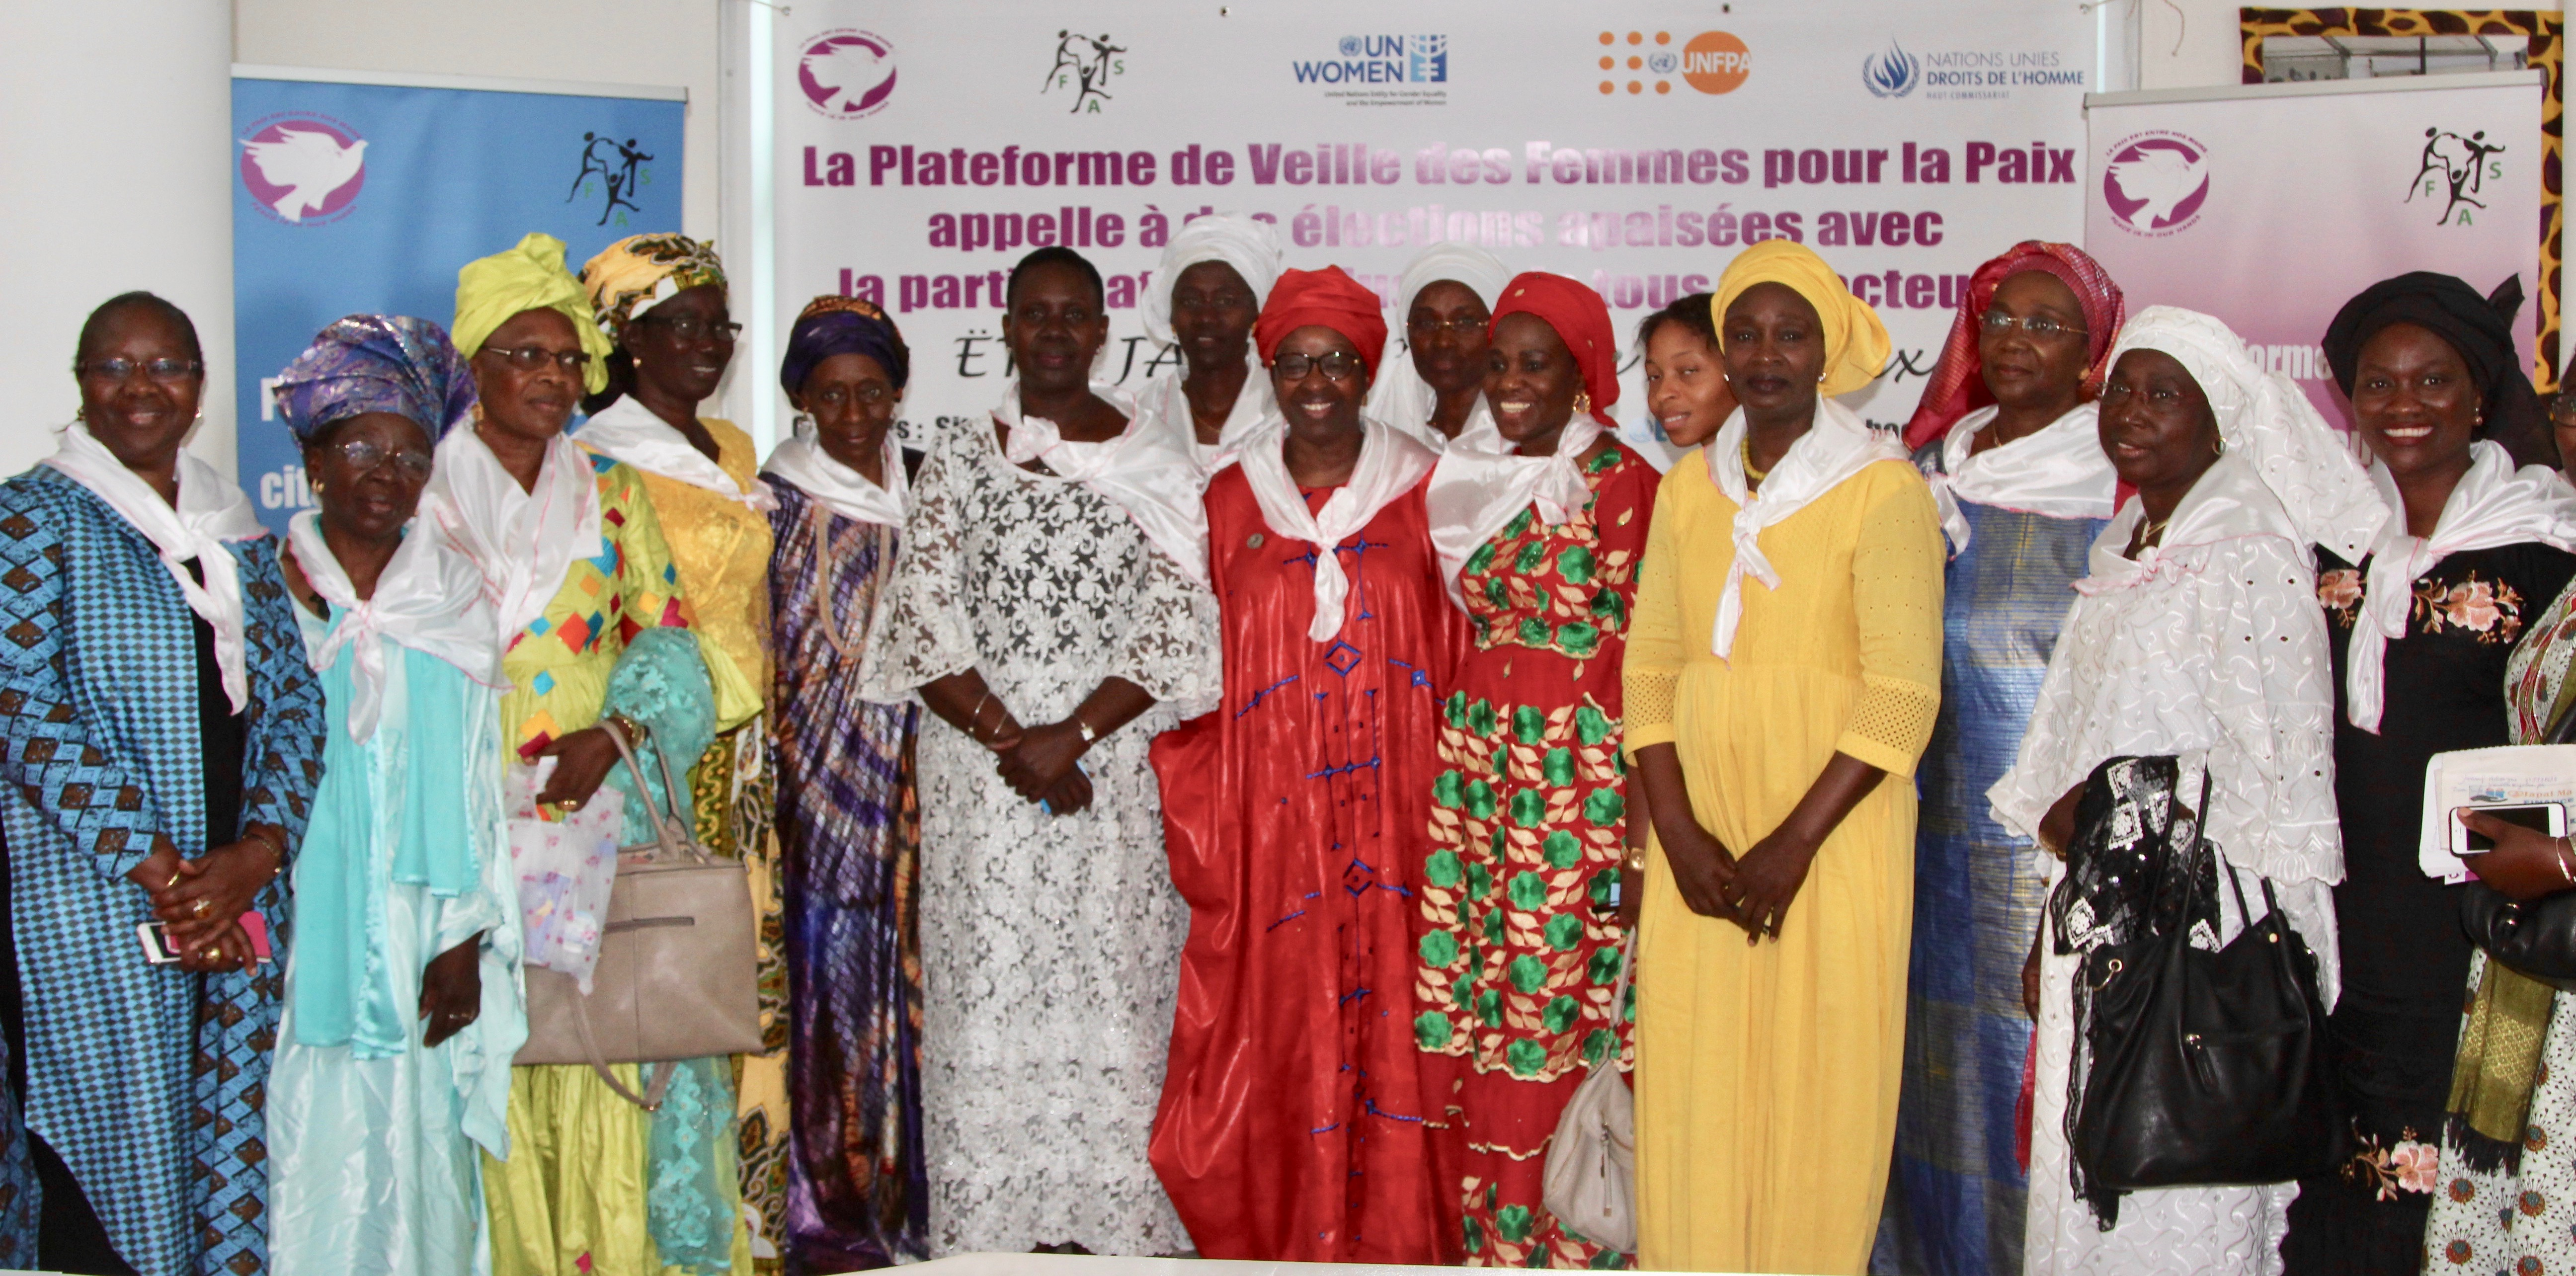 Senegalese women leaders mobilize for peace and women's leadership